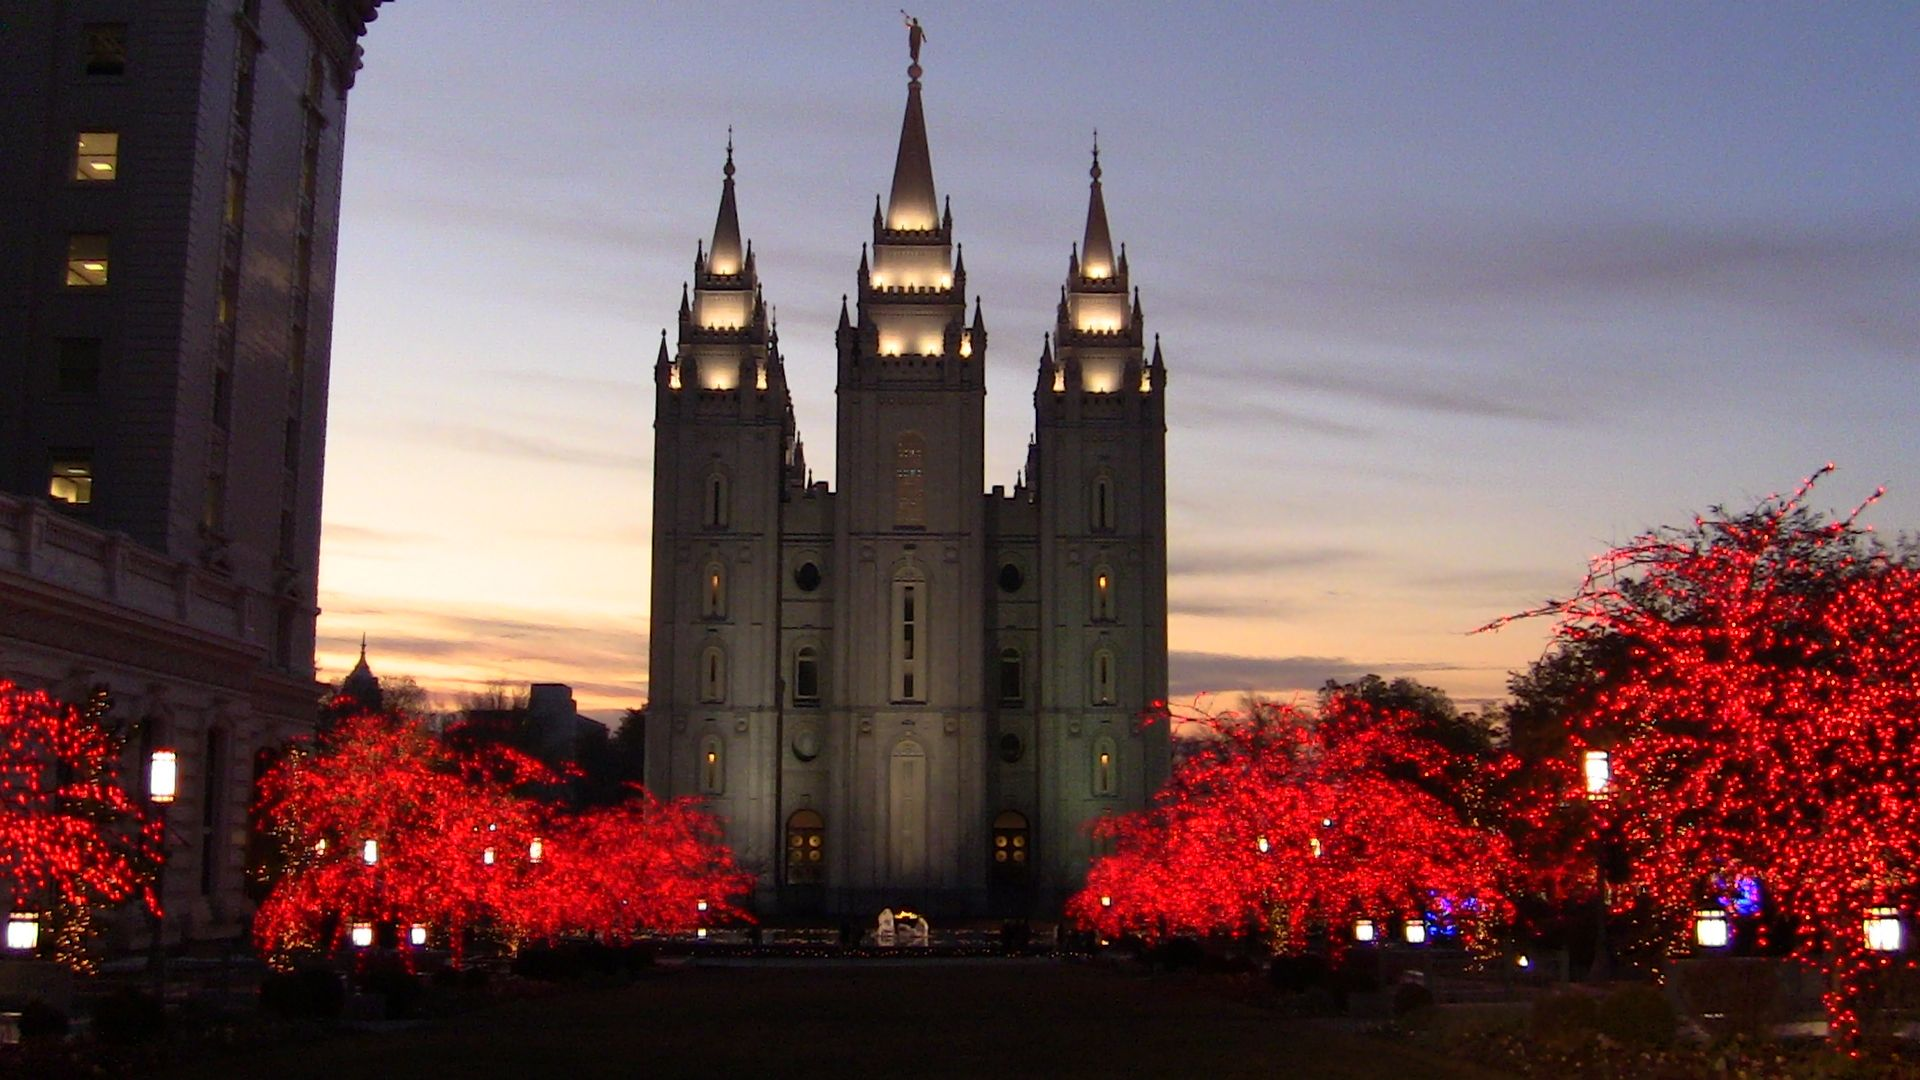 Mormon temple iphone wallpapers top free mormon temple iphone backgrounds wallpaperaccess - Lds temple wallpaper ...